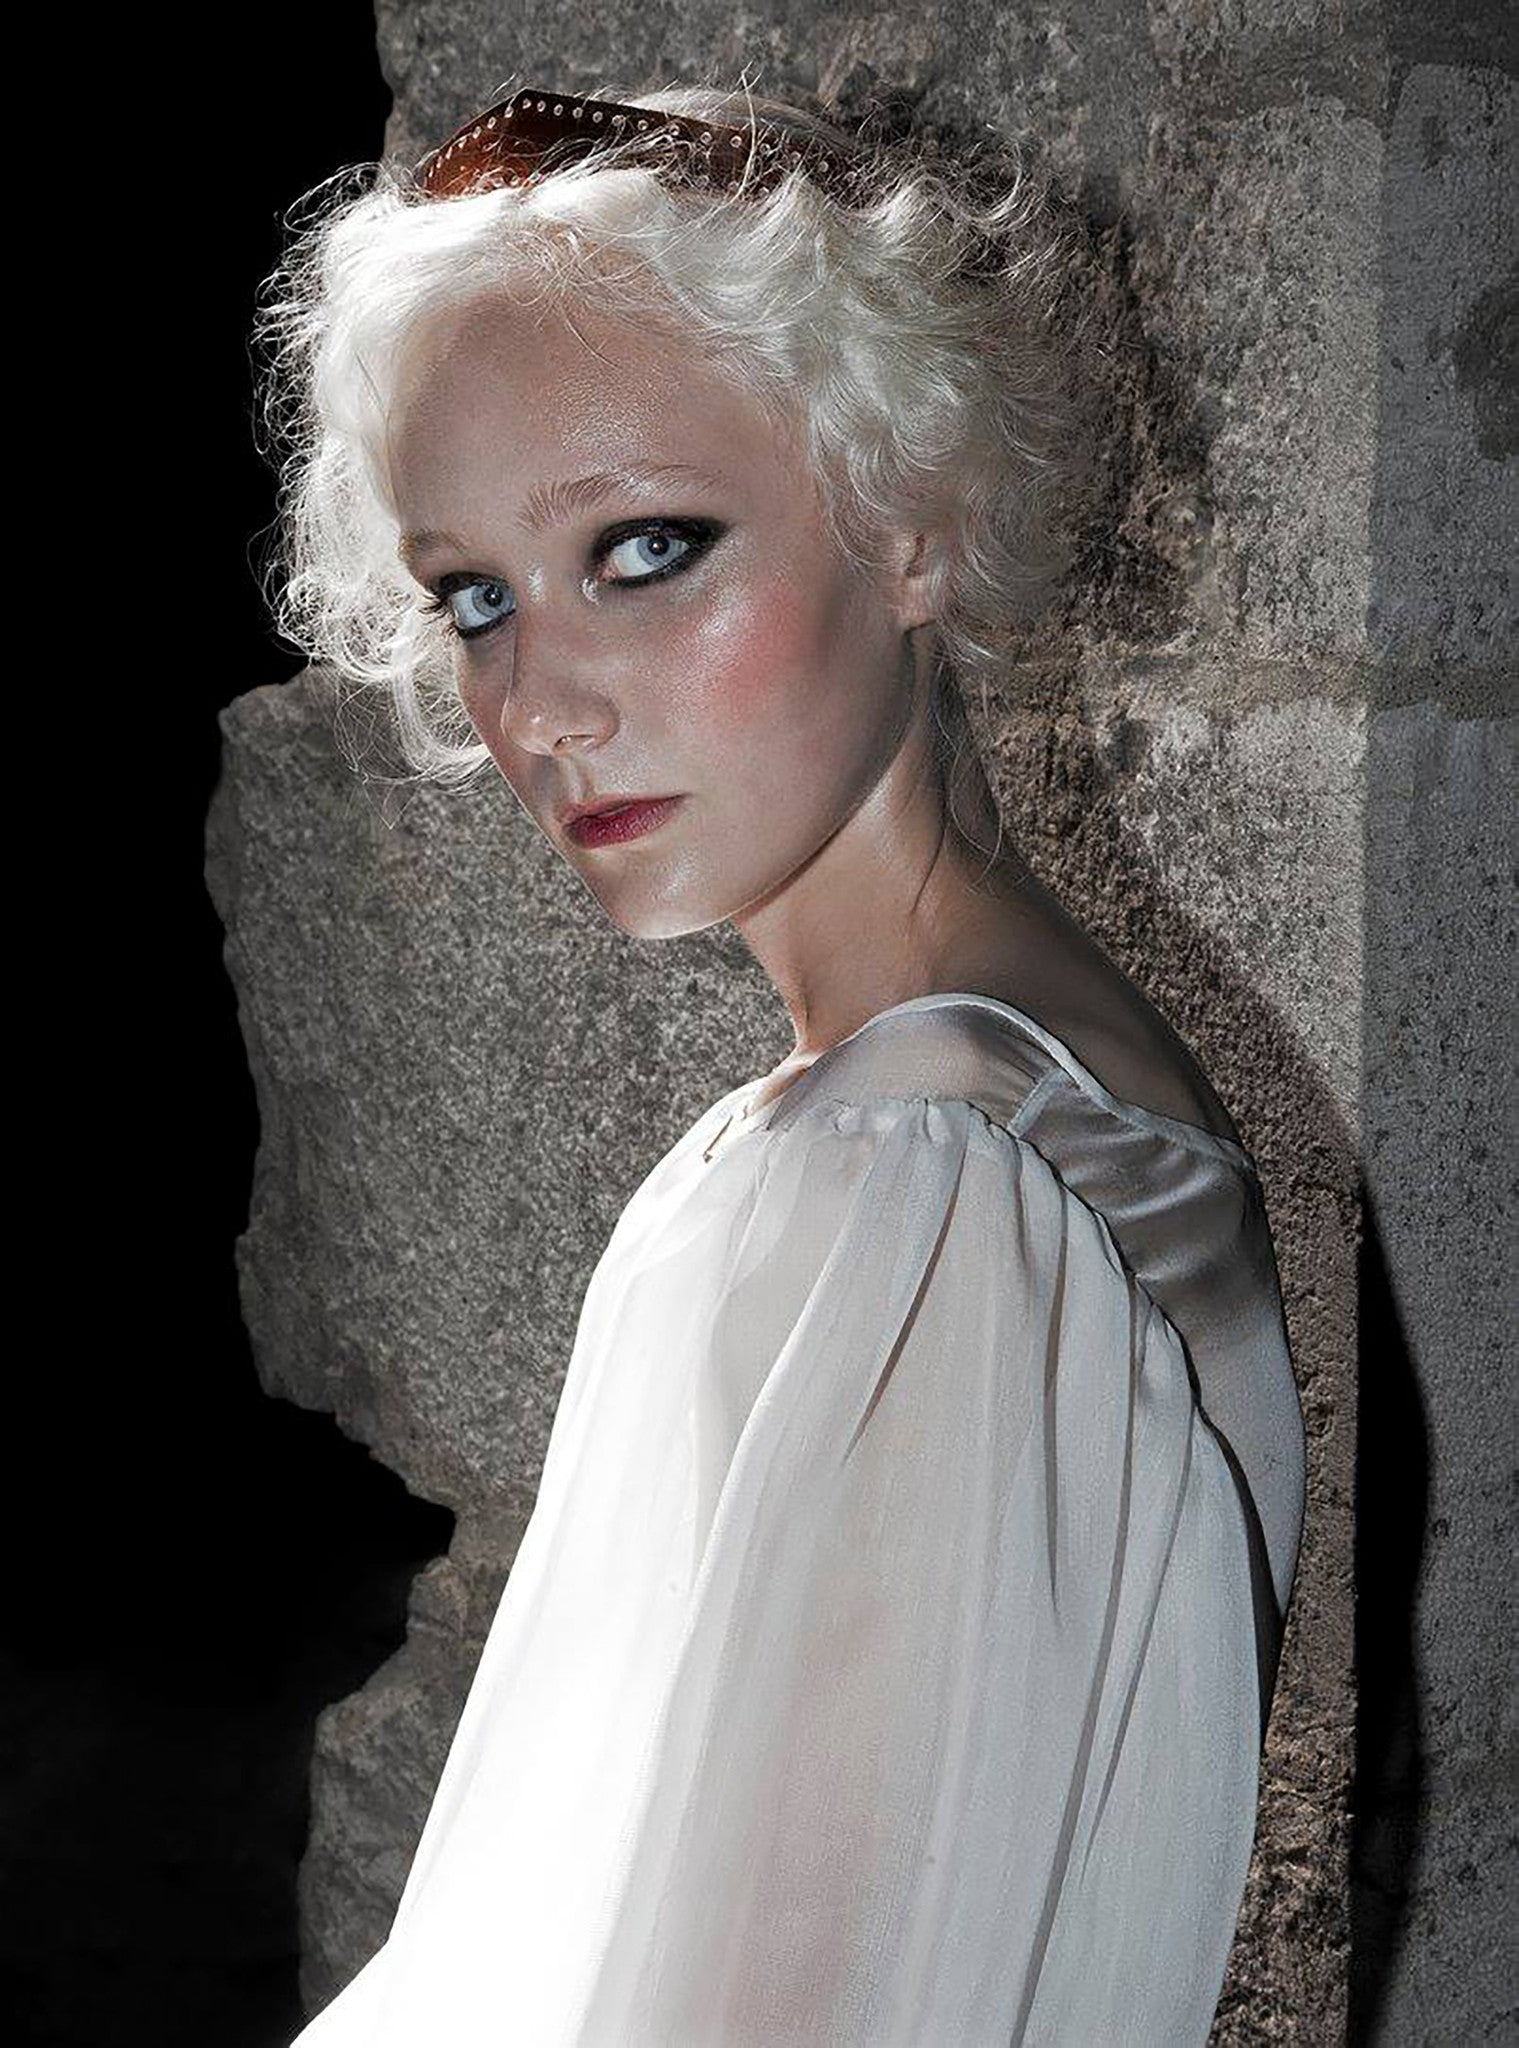 Juliette Fazekas IMG Model Wendy Nichol Clothing Designer Ready to Wear Fashion Runway Show SS14 Saints of the Zodiac Astrological Sign Aries the Ram Sheep Handmade in NYC White Layered Silk Chiffon Puff Sleeve Blouse Long Train Skirt Copper Patent Leather Crow Circle Canteen Bag Made to Order Measure Custom Tailoring Color Fabric